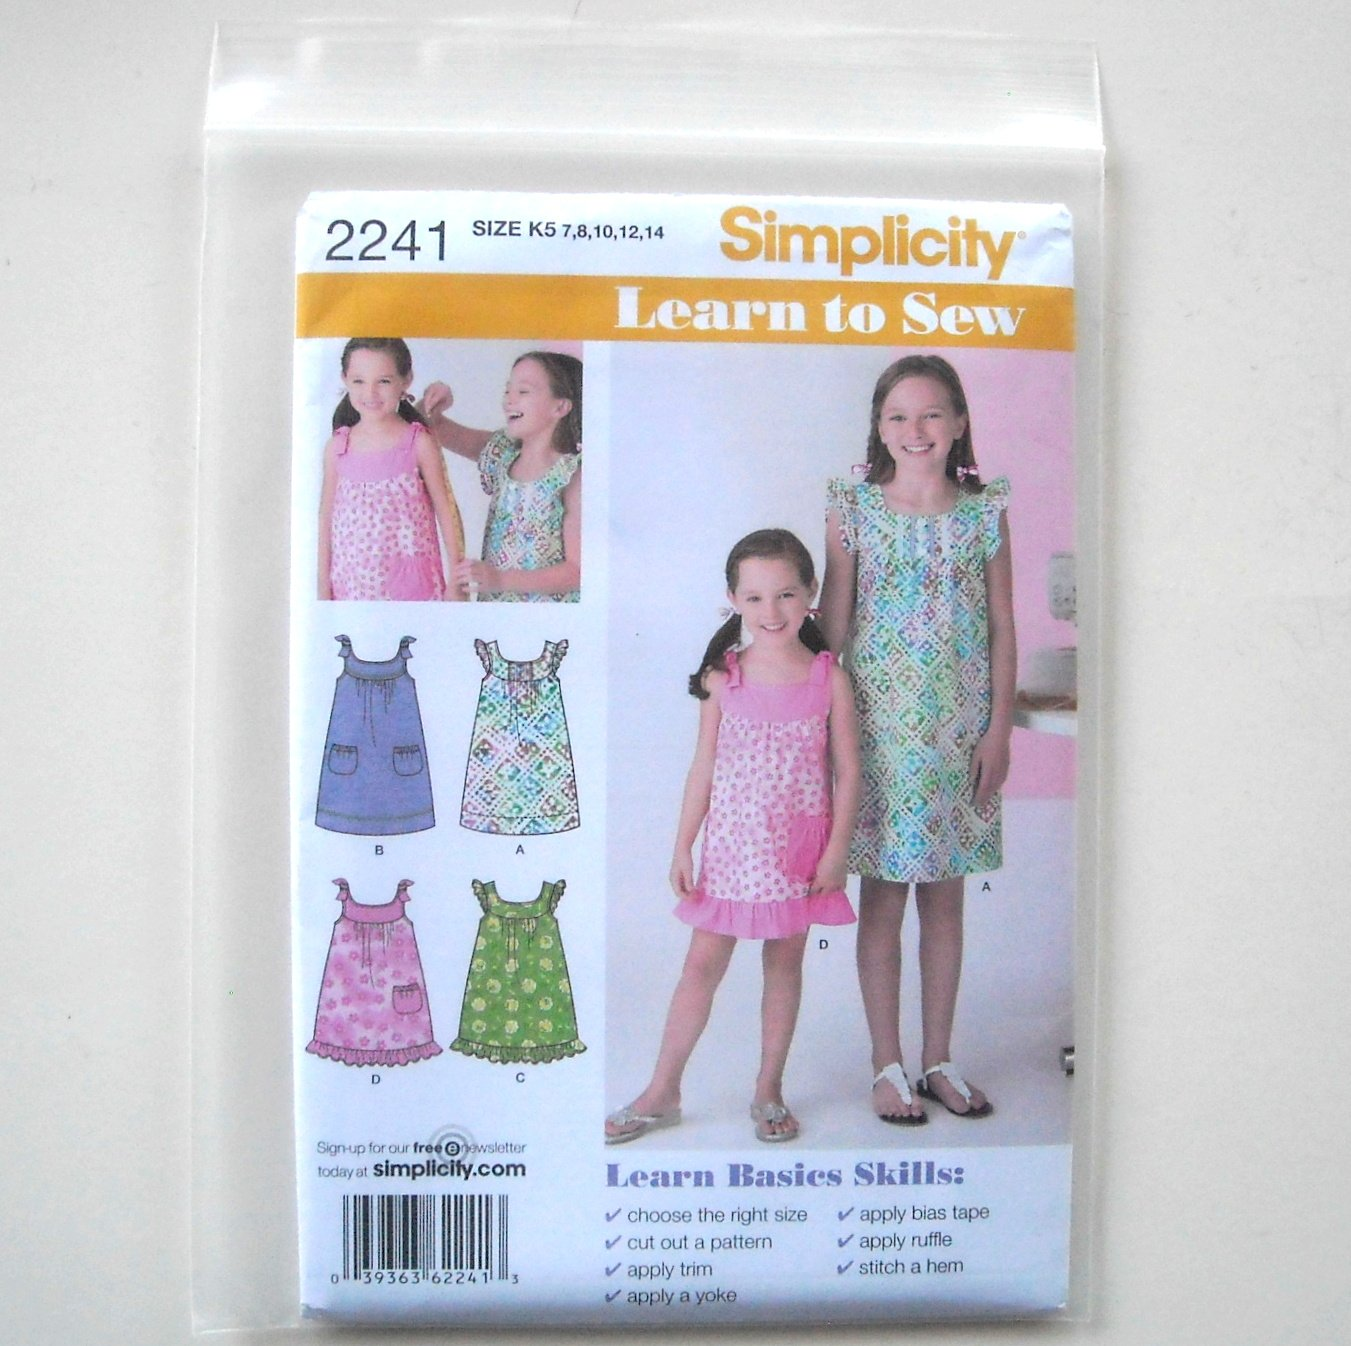 Childs & Girls Dresses 5 - 14 Learn to Sew Simplicity Sewing Pattern 2241